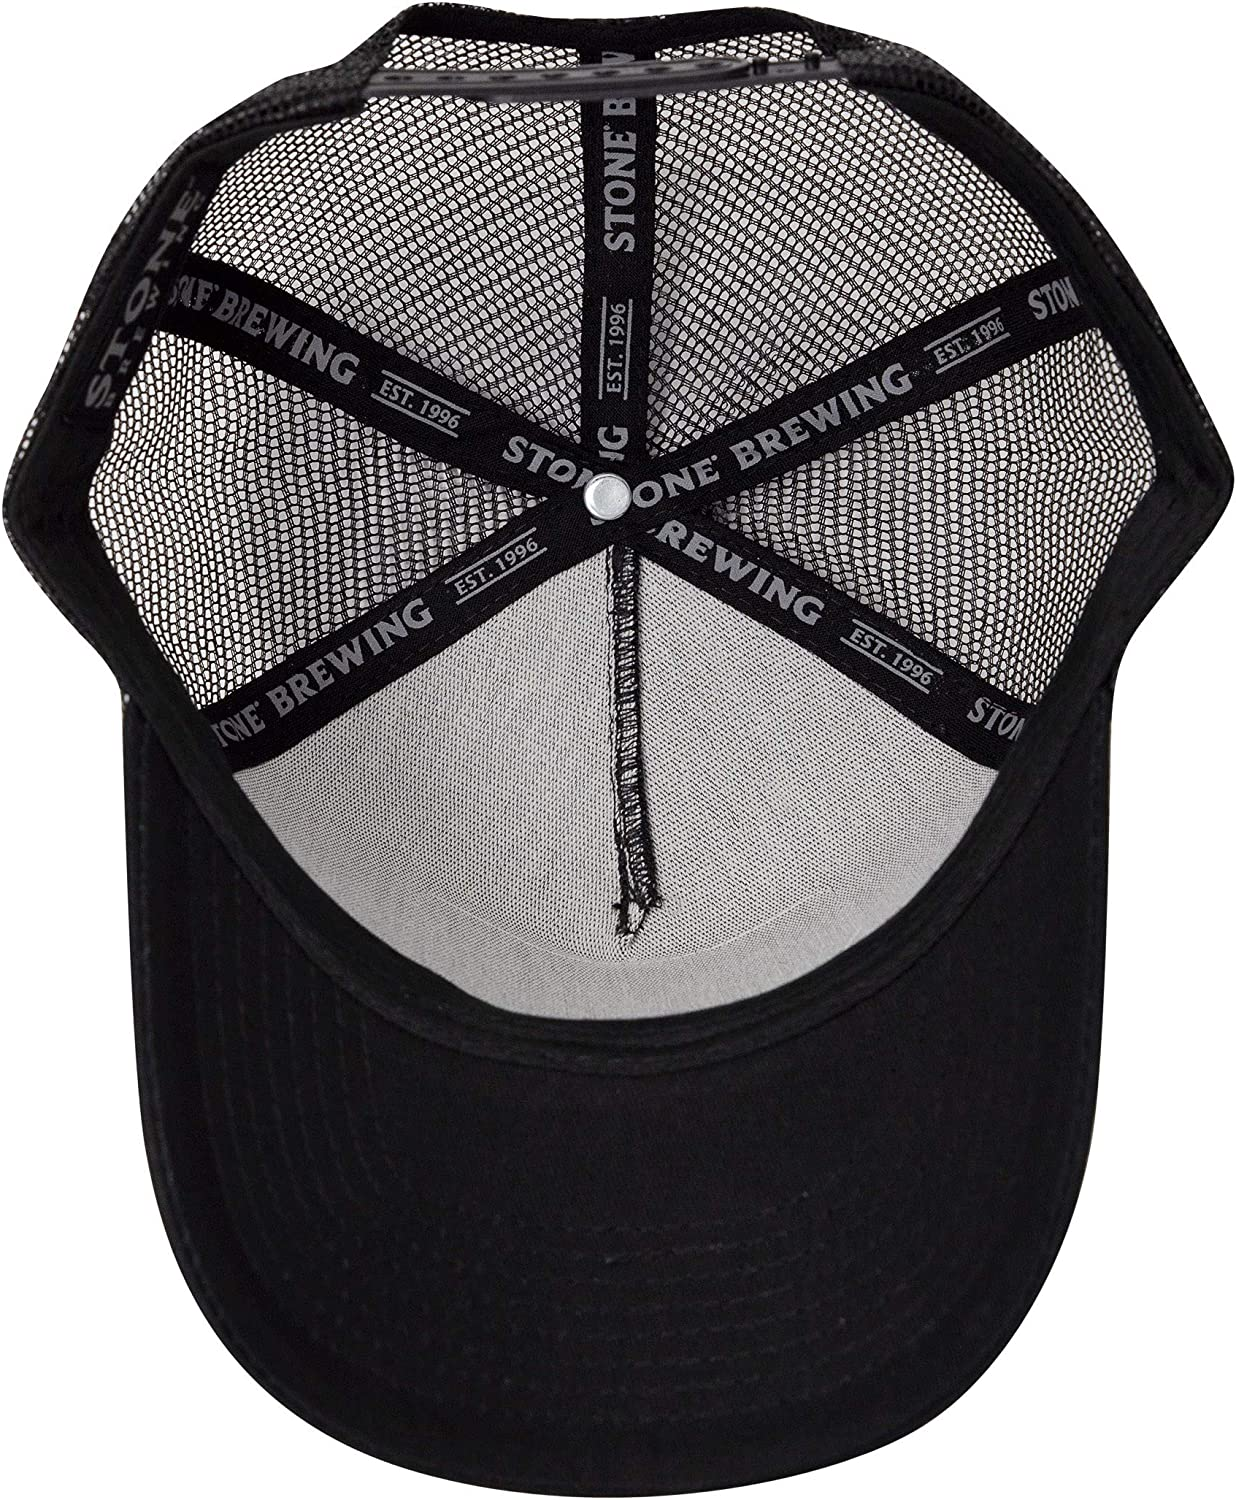 Black America Adjustable Mesh Trucker Snapback Hat Stone Brewing Co